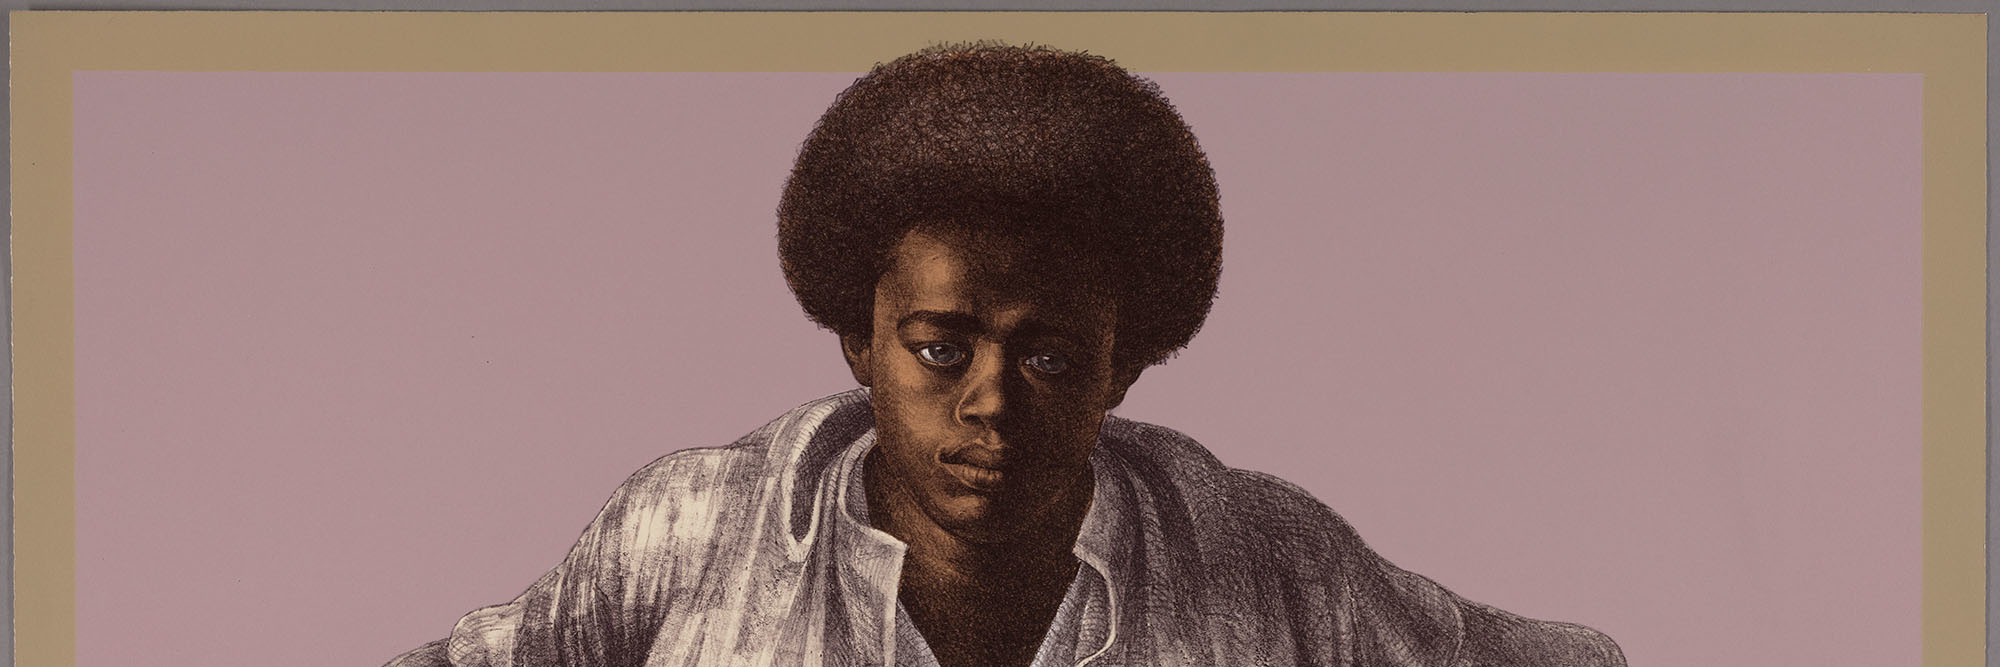 "Charles White. Sound of Silence. 1978. Color lithograph on paper, 25 1/8 × 35 5/16"" (63.8 × 89.7 cm). Publisher: Hand Graphics, Ltd. Printer: David Panosh. The Art Institute of Chicago. Margaret Fisher Fund. © 1978 The Charles White Archives"